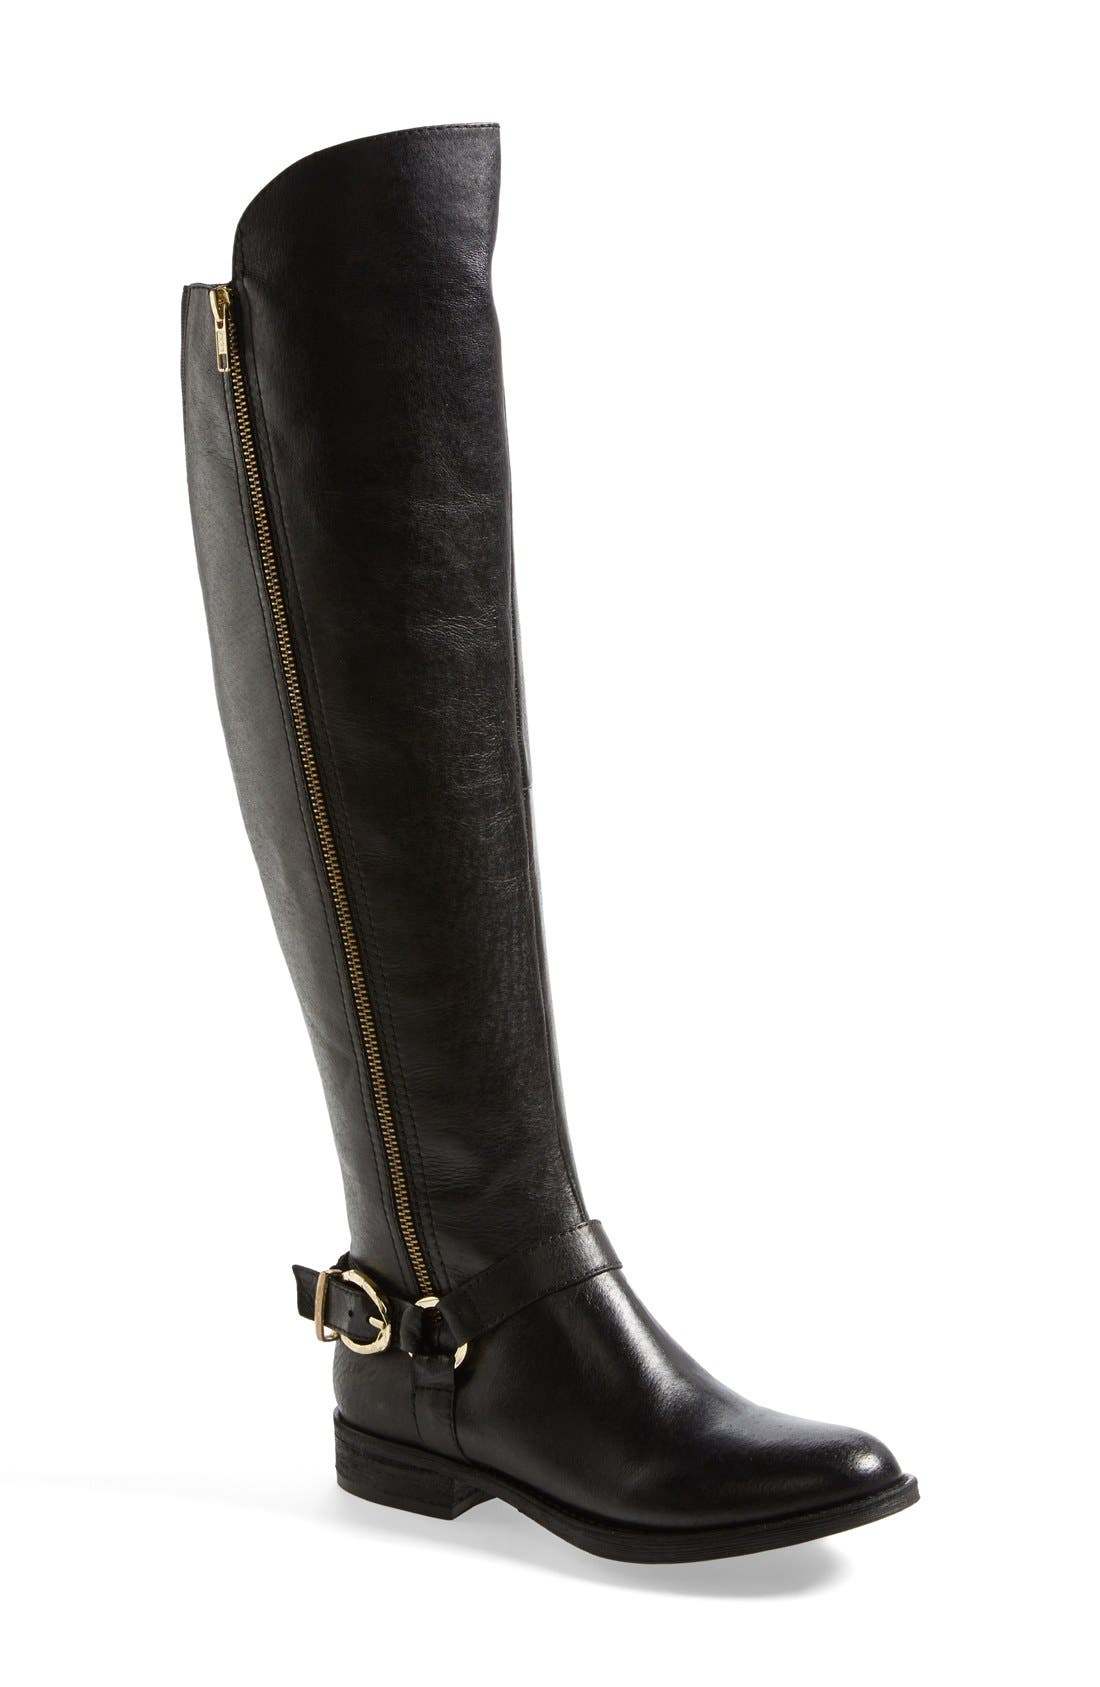 Alternate Image 1 Selected - Steve Madden 'Skippur' Over The Knee Boot (Women)